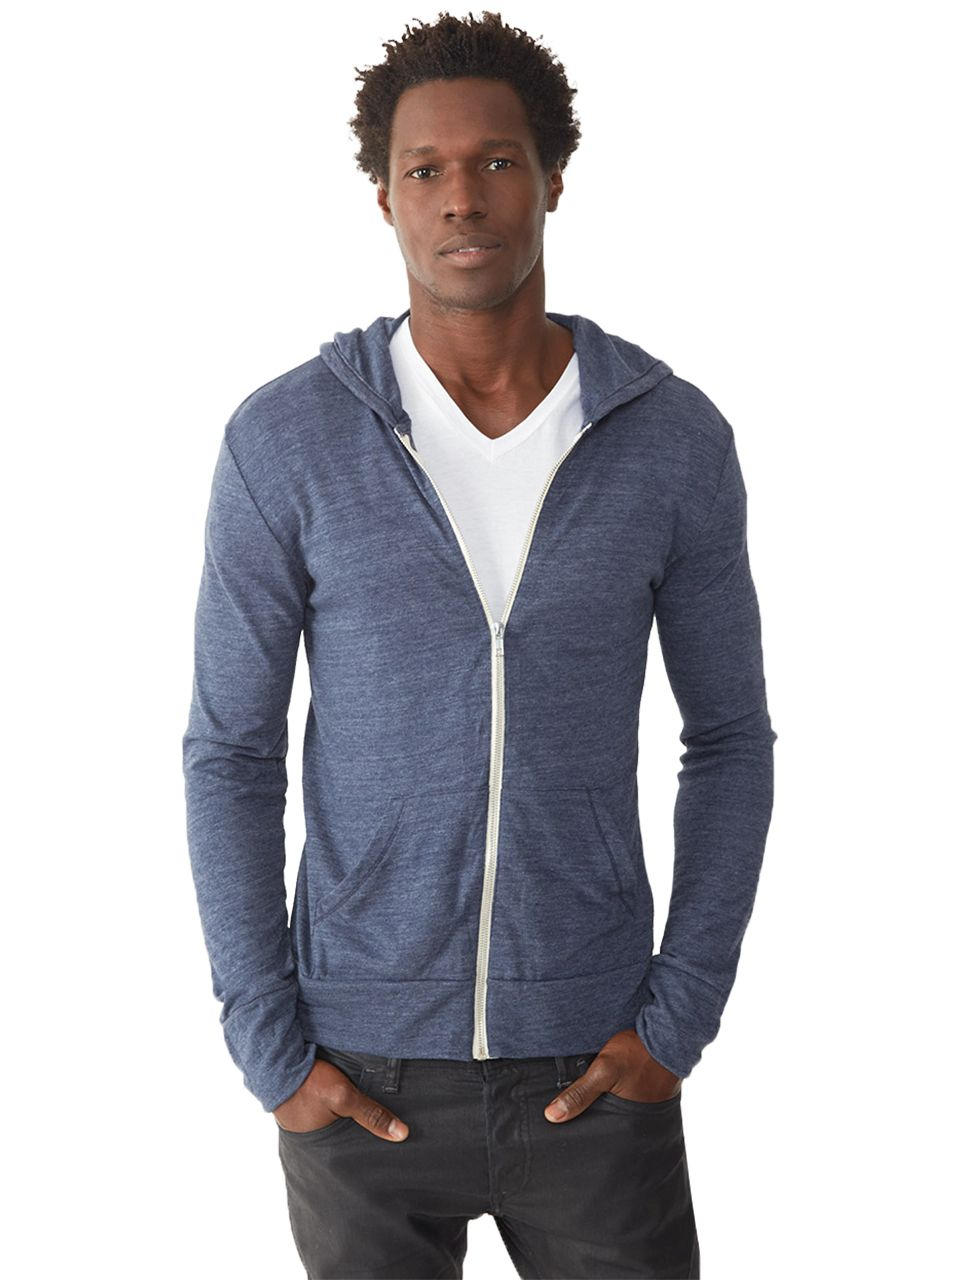 f532a56a63 Basic Eco-Jersey Zip Hoodie